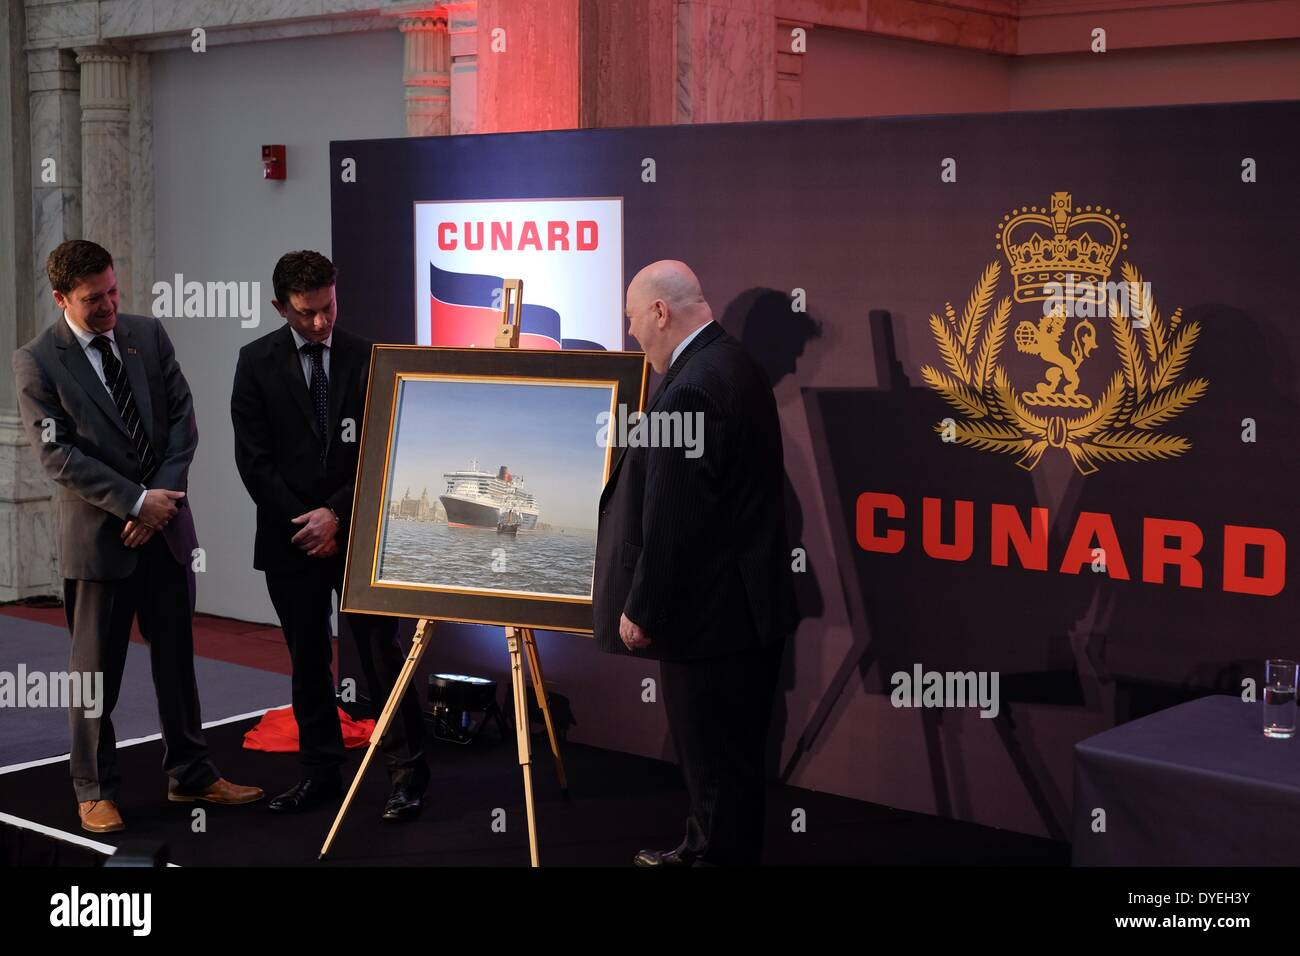 Cunard Building, Liverpool. 16th April, 2014. Liverpool's Mayor Joe Anderson and Cunard's director Angus Struthers unviel a unique portrait of Cunard's first ship the Britania and their current flagship the Queen Mary 2. Credit:  Peter Carr/Alamy Live News - Stock Image